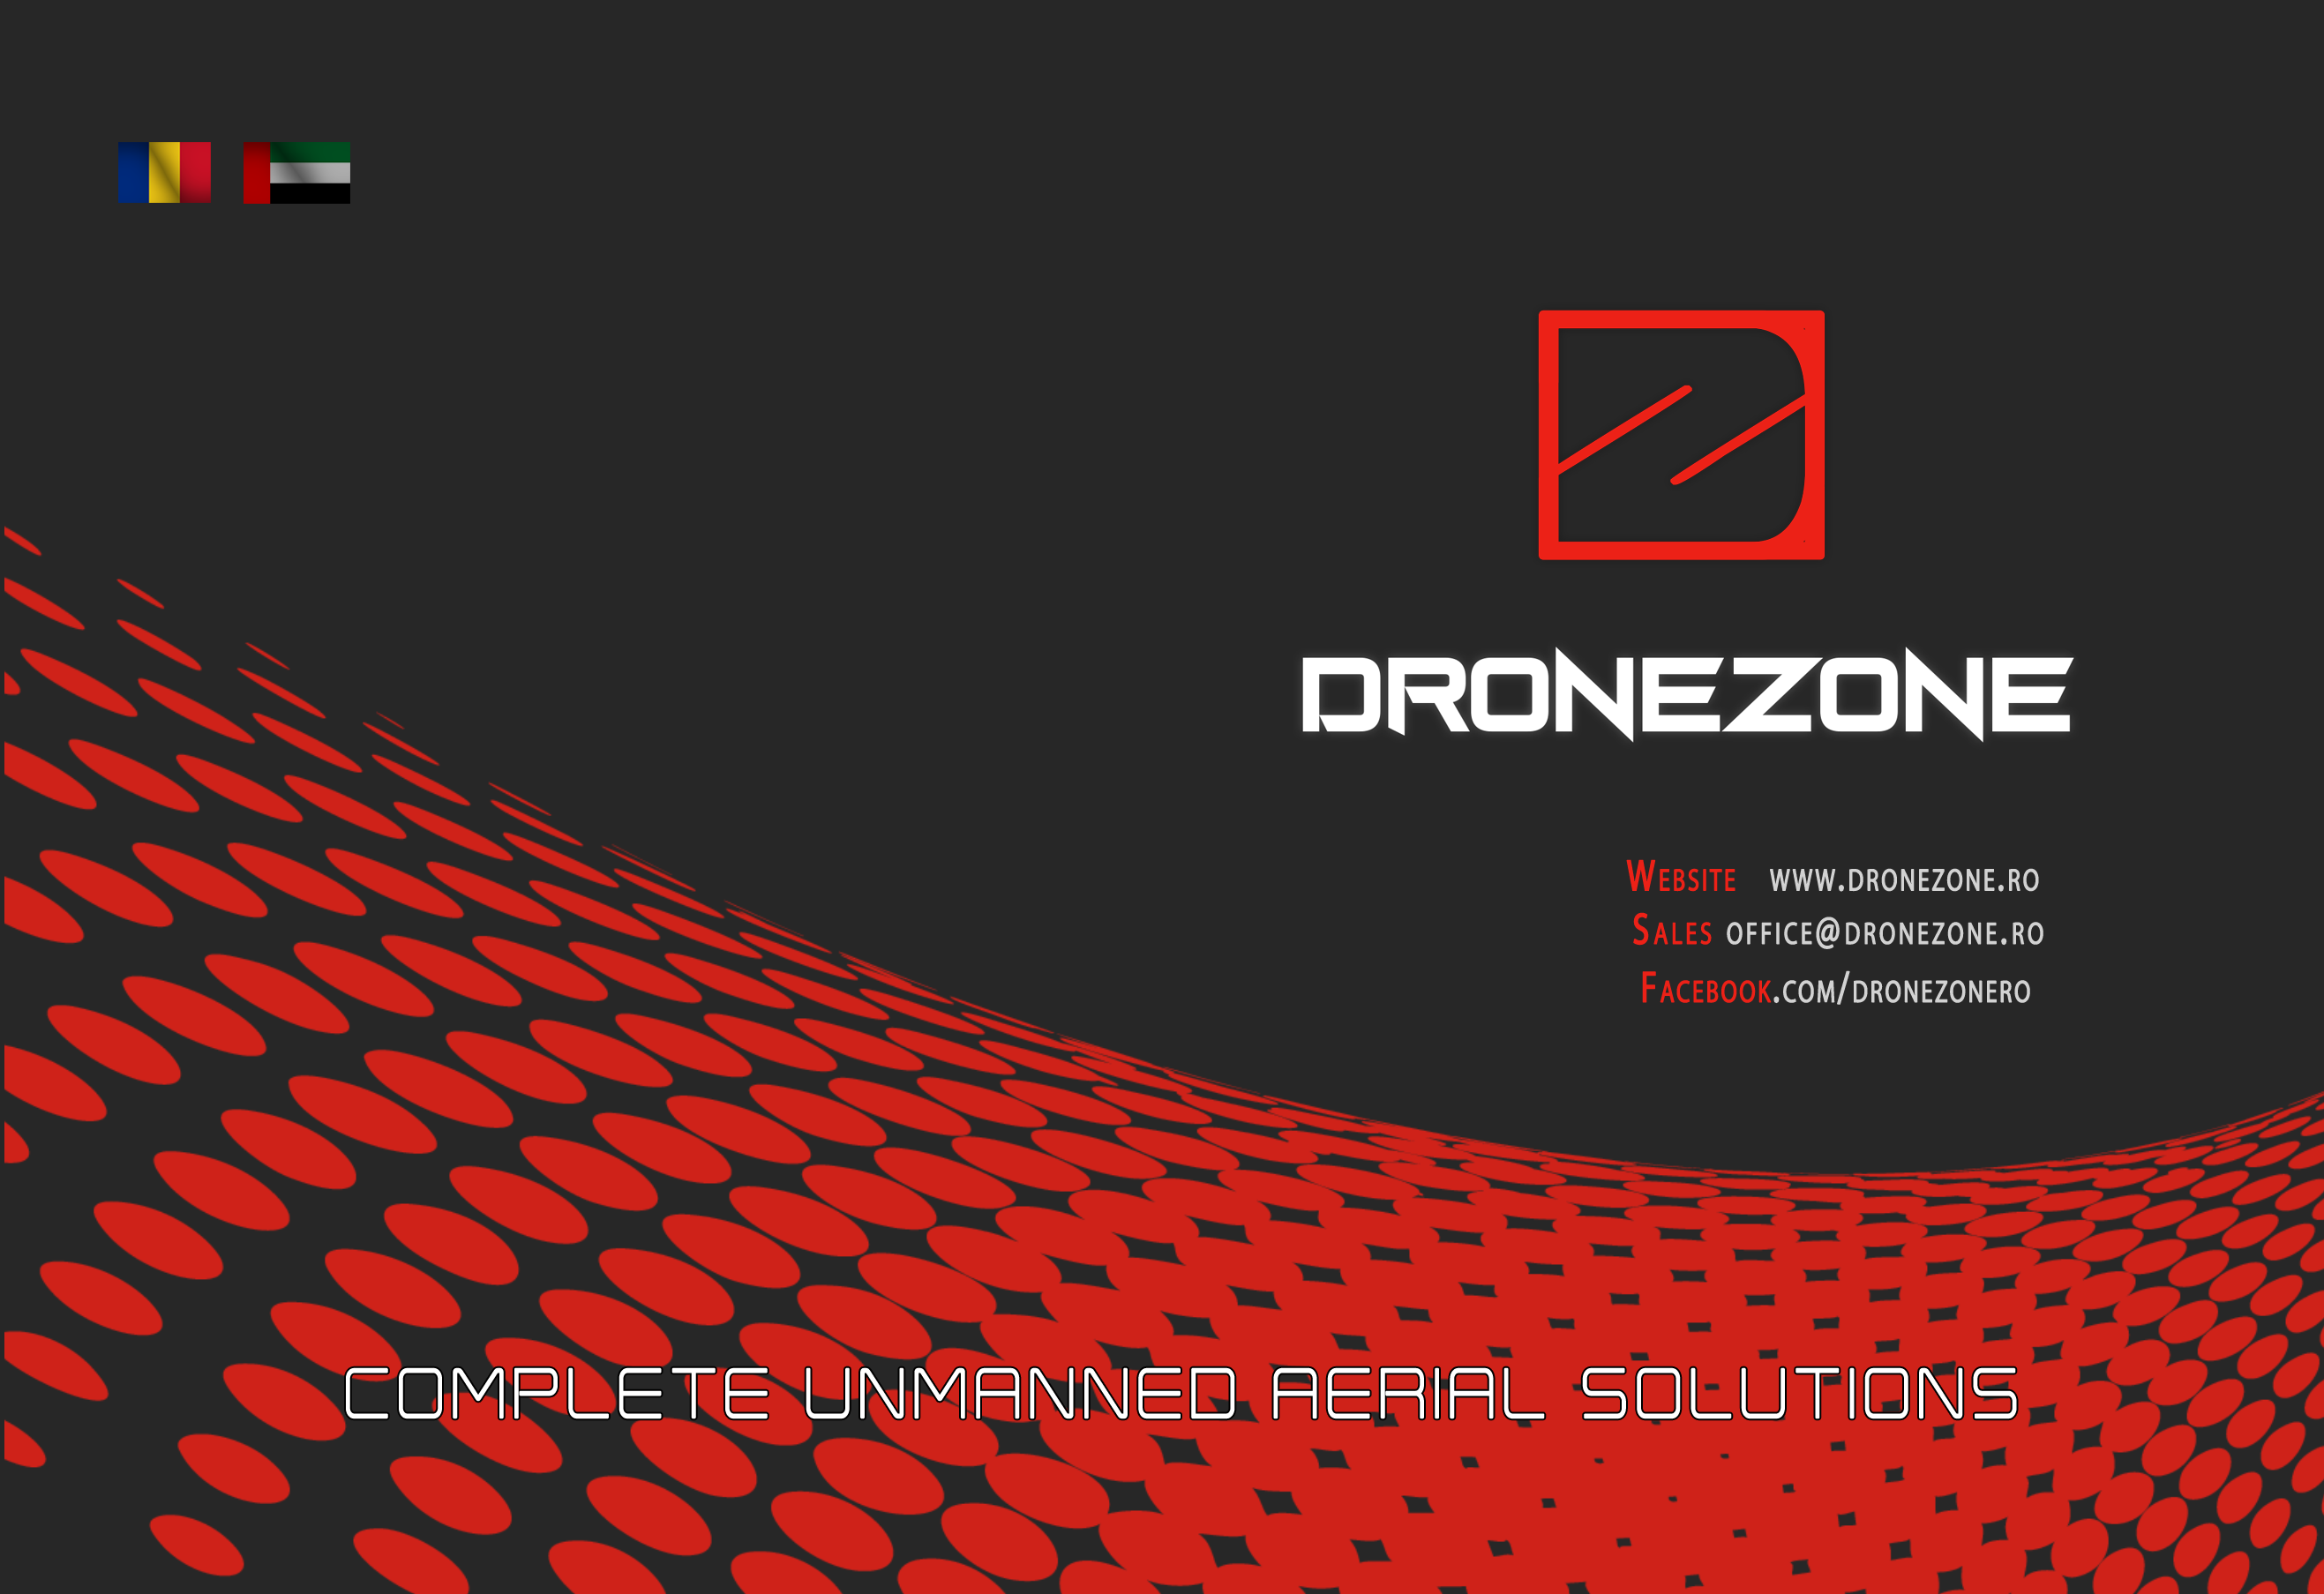 https://www.dronezone.ro/wp-content/uploads/2021/02/cop4.png